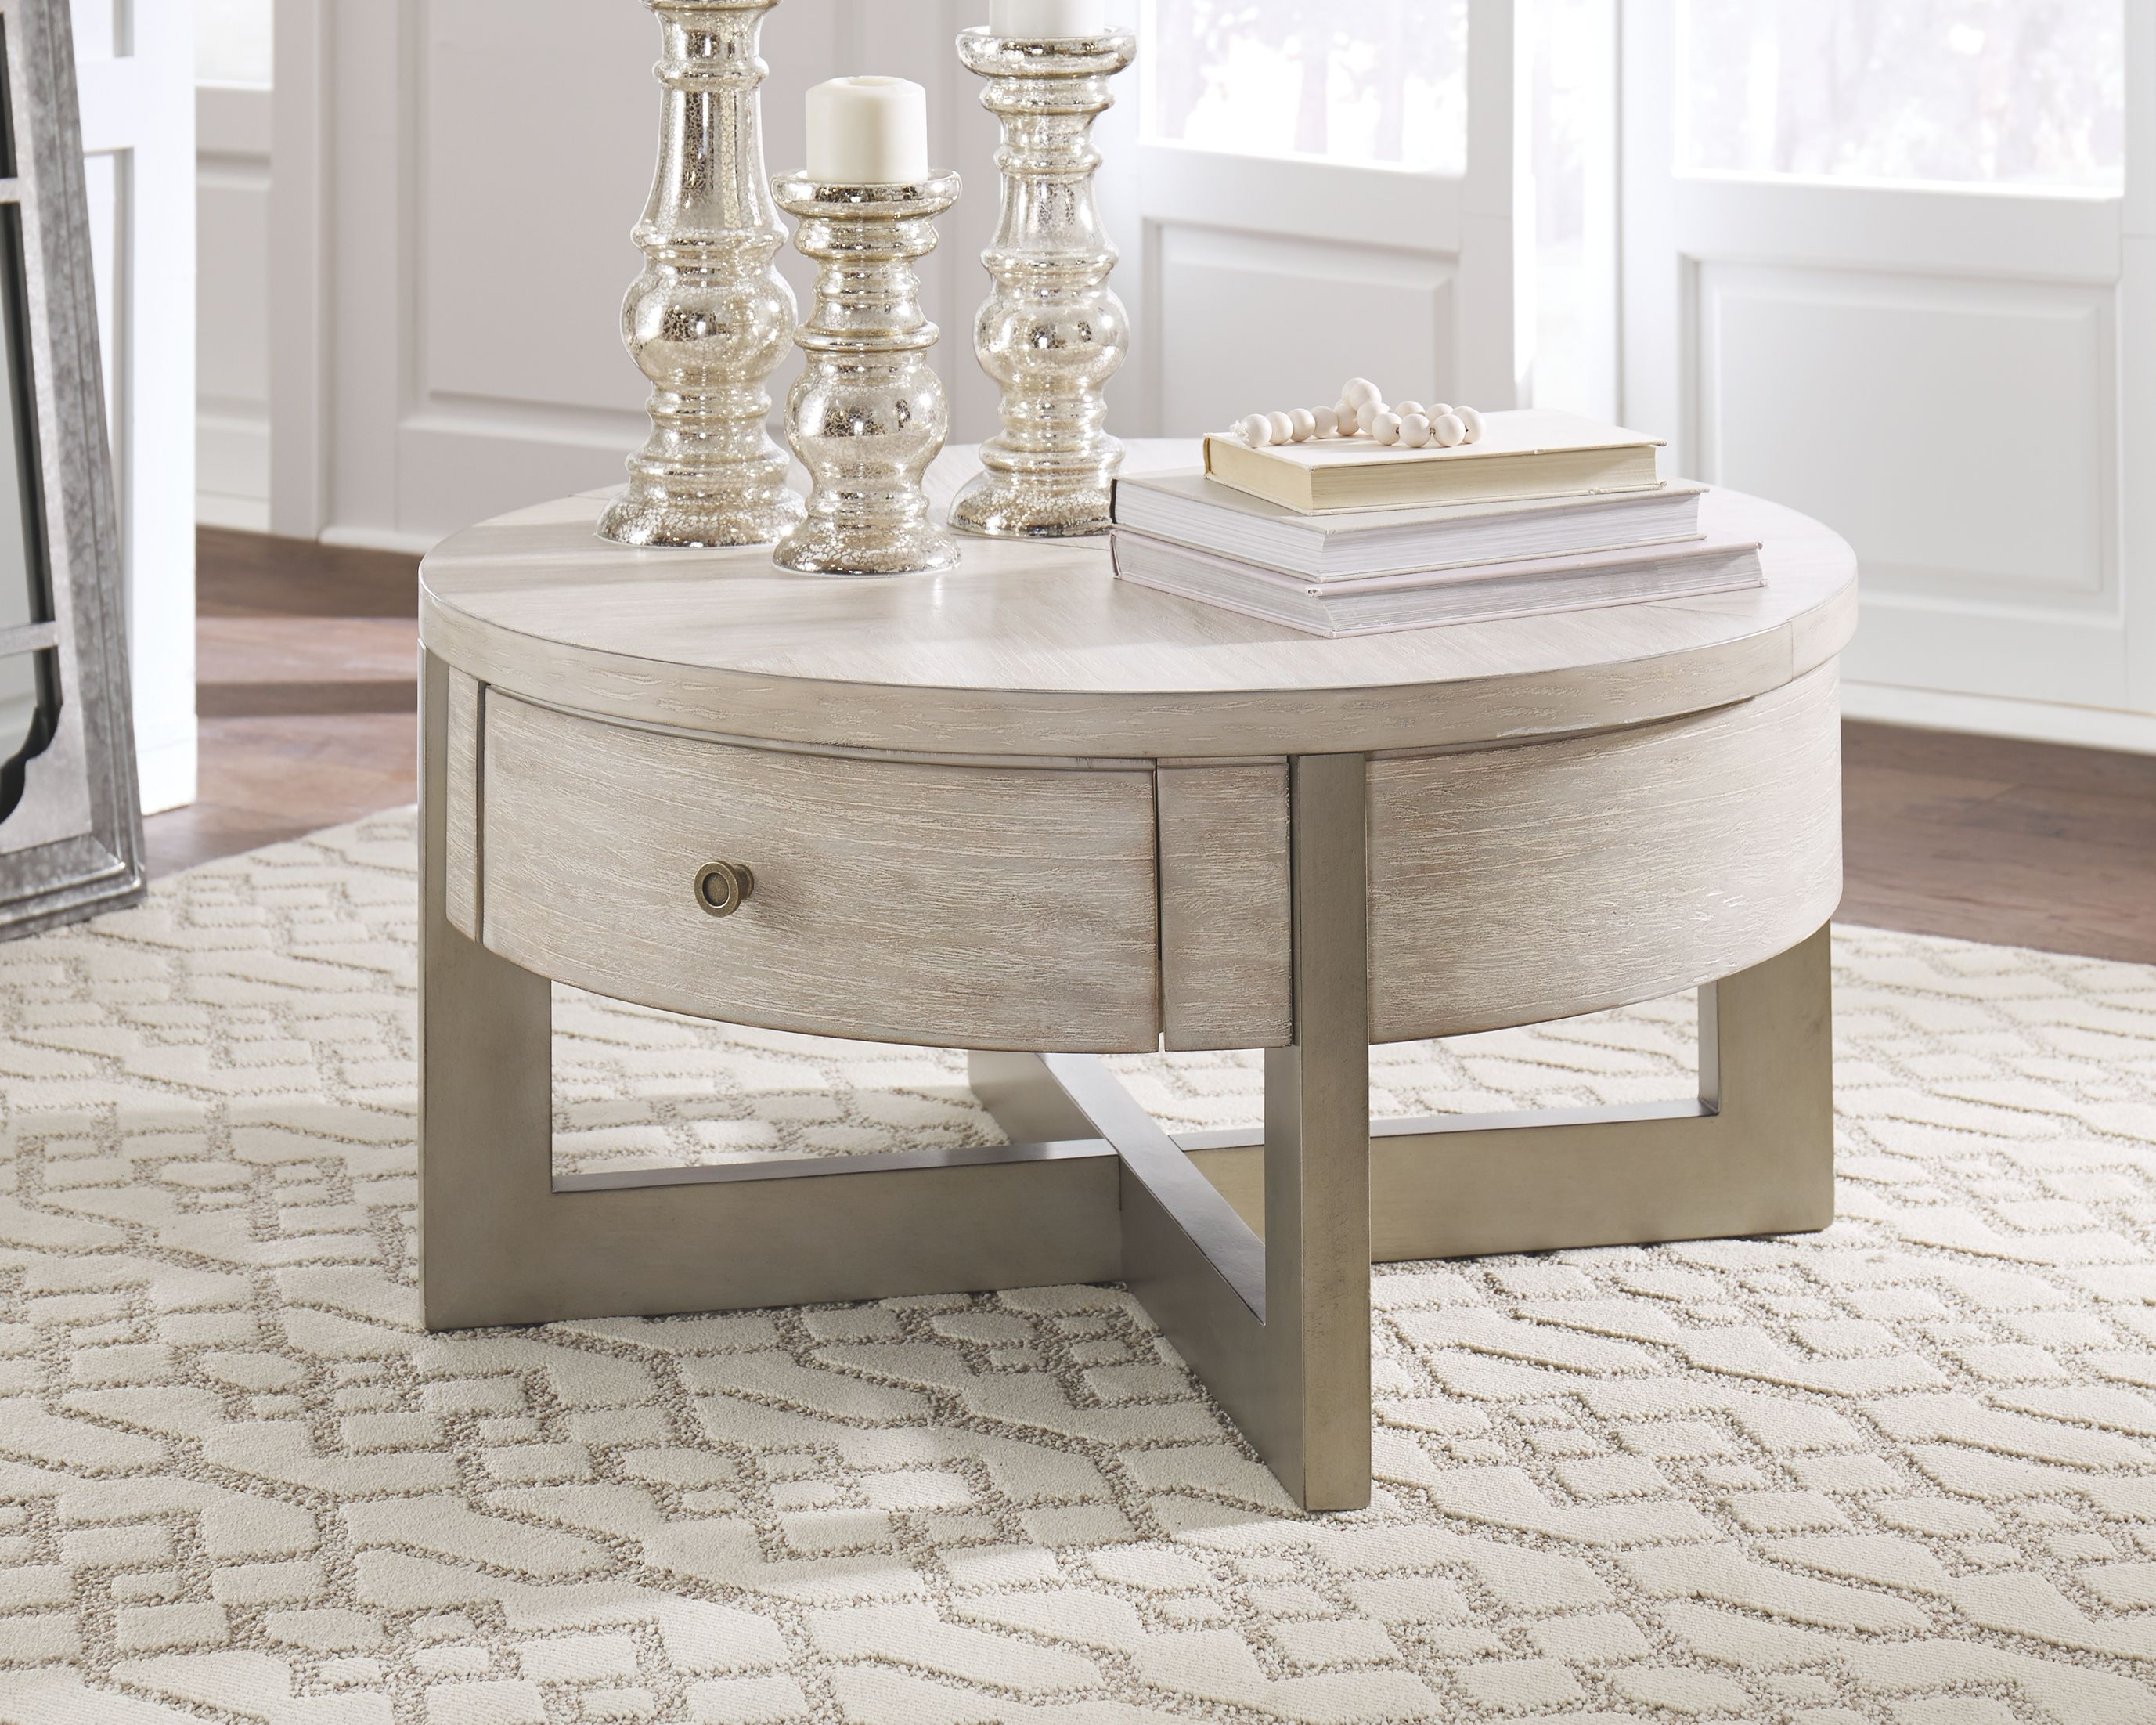 Urlander Coffee Table With Lift Top Ashley Furniture Homestore In 2021 Lift Top Coffee Table Coffee Table Contemporary End Tables [ 2203 x 2754 Pixel ]